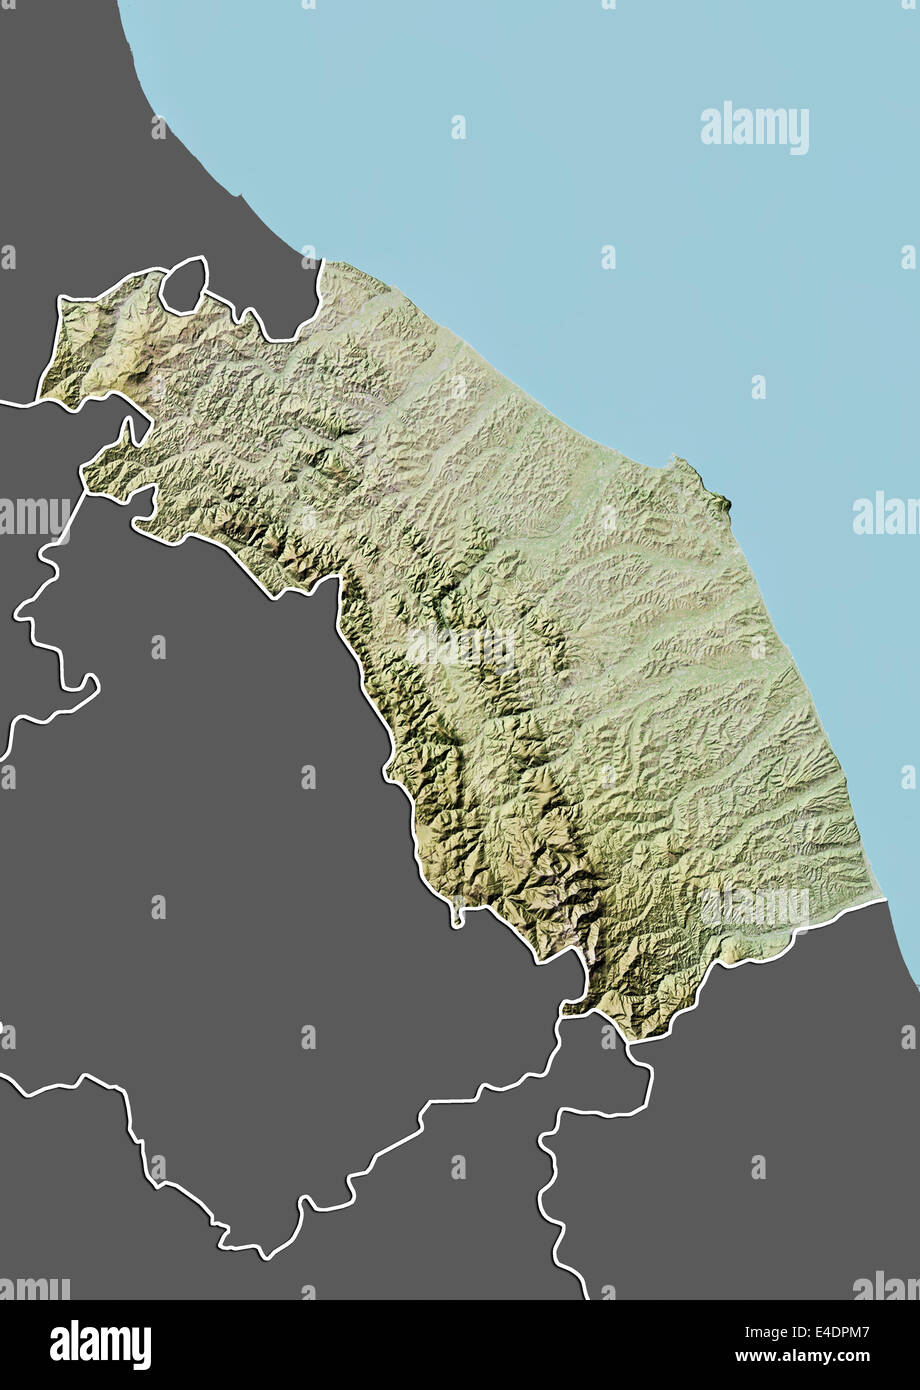 Marche Region Italy Map.Region Of Marche Italy Relief Map Stock Photo 71603287 Alamy